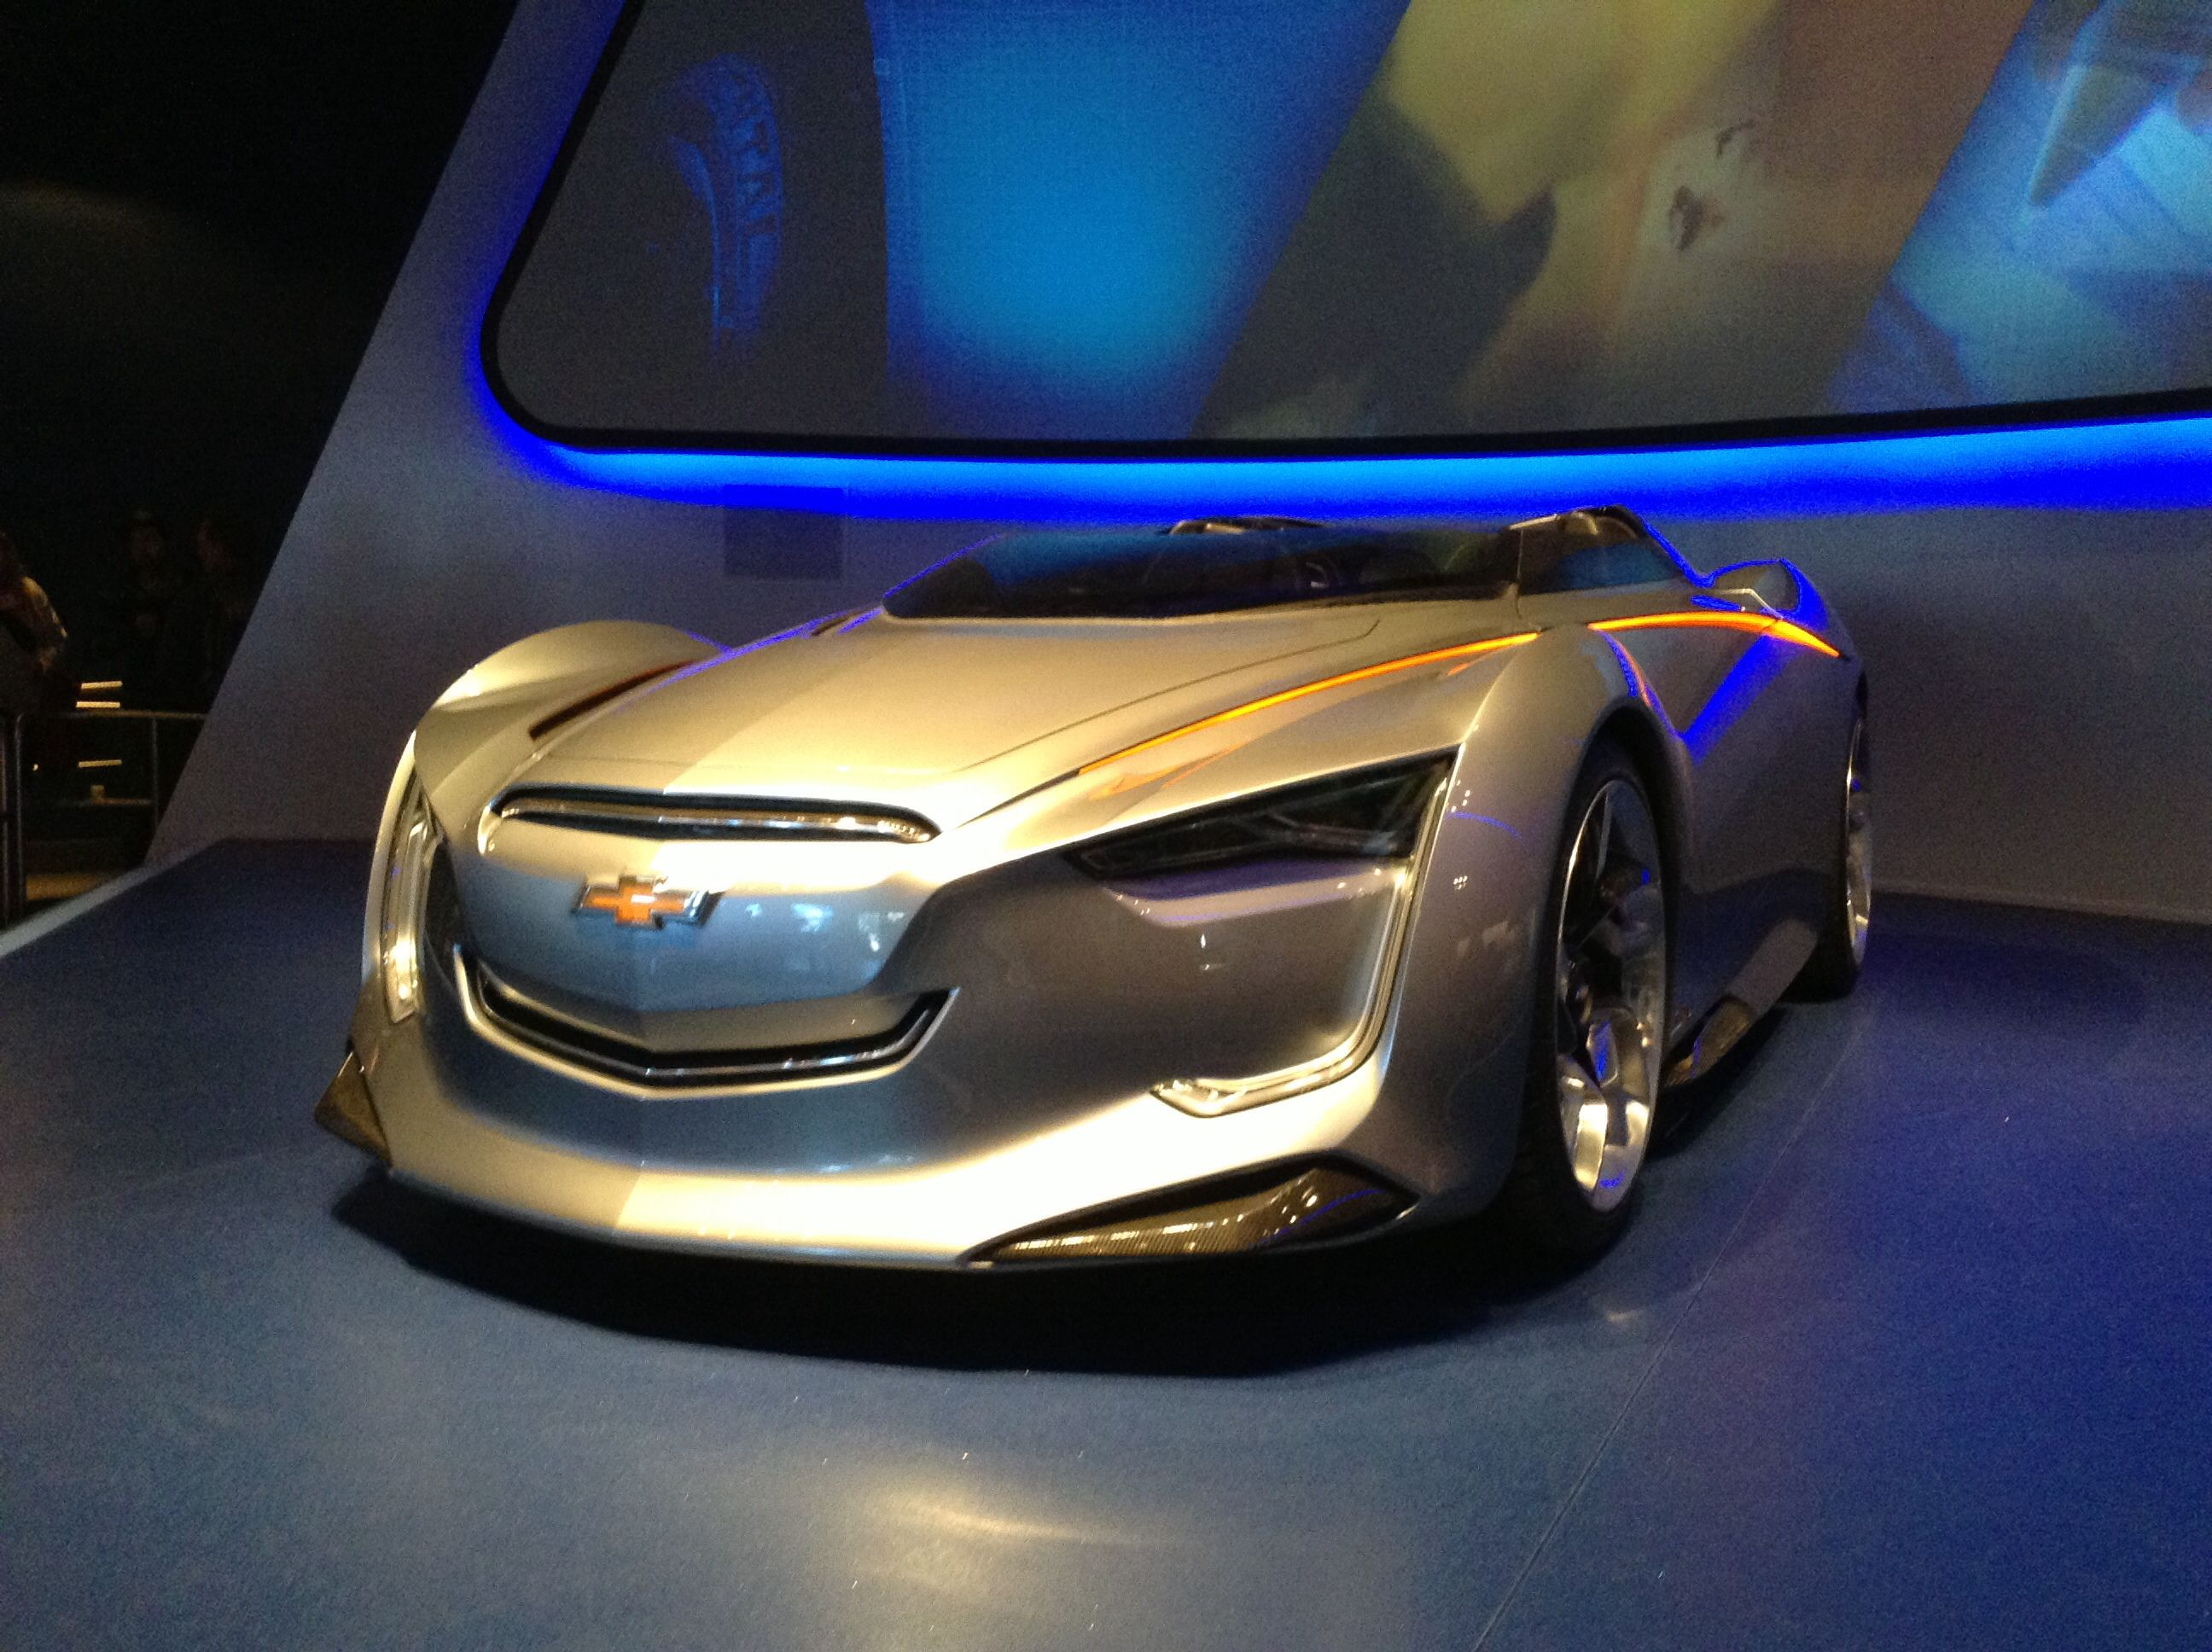 2020 Chevy Cool cars, Chevy, Cars